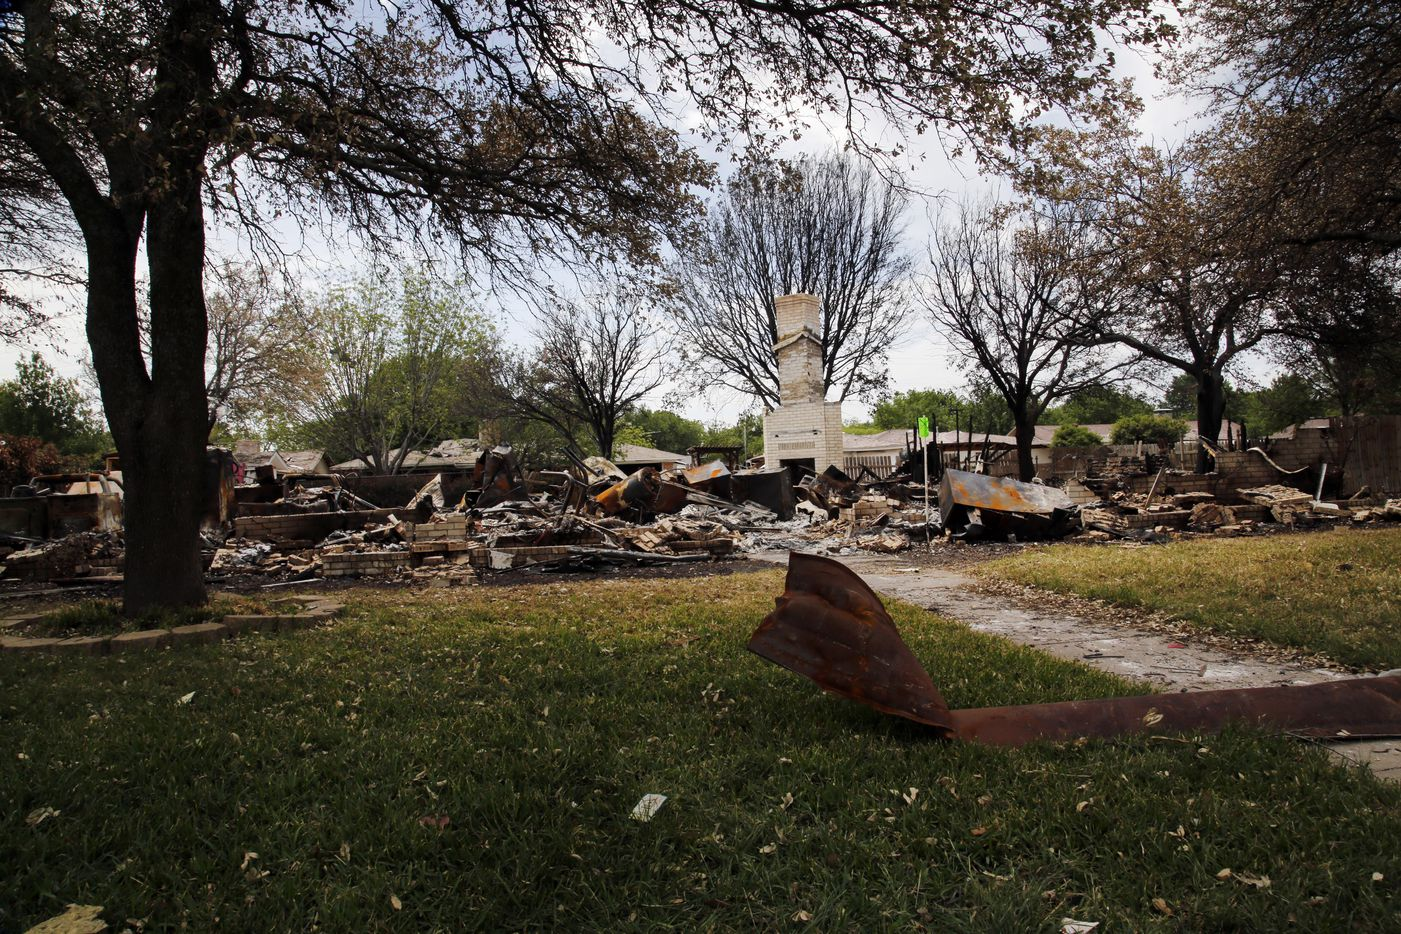 A house on on Reagan St. in West, Texas, stands in ruins on April 27, 2013, due to the West Fertilizer Co. explosion on April 17, 2013. Residents of the worst-damaged areas finally got to return to see their homes 10 days later.  (Kye R. Lee/The Dallas Morning News) 04282013xNEWS